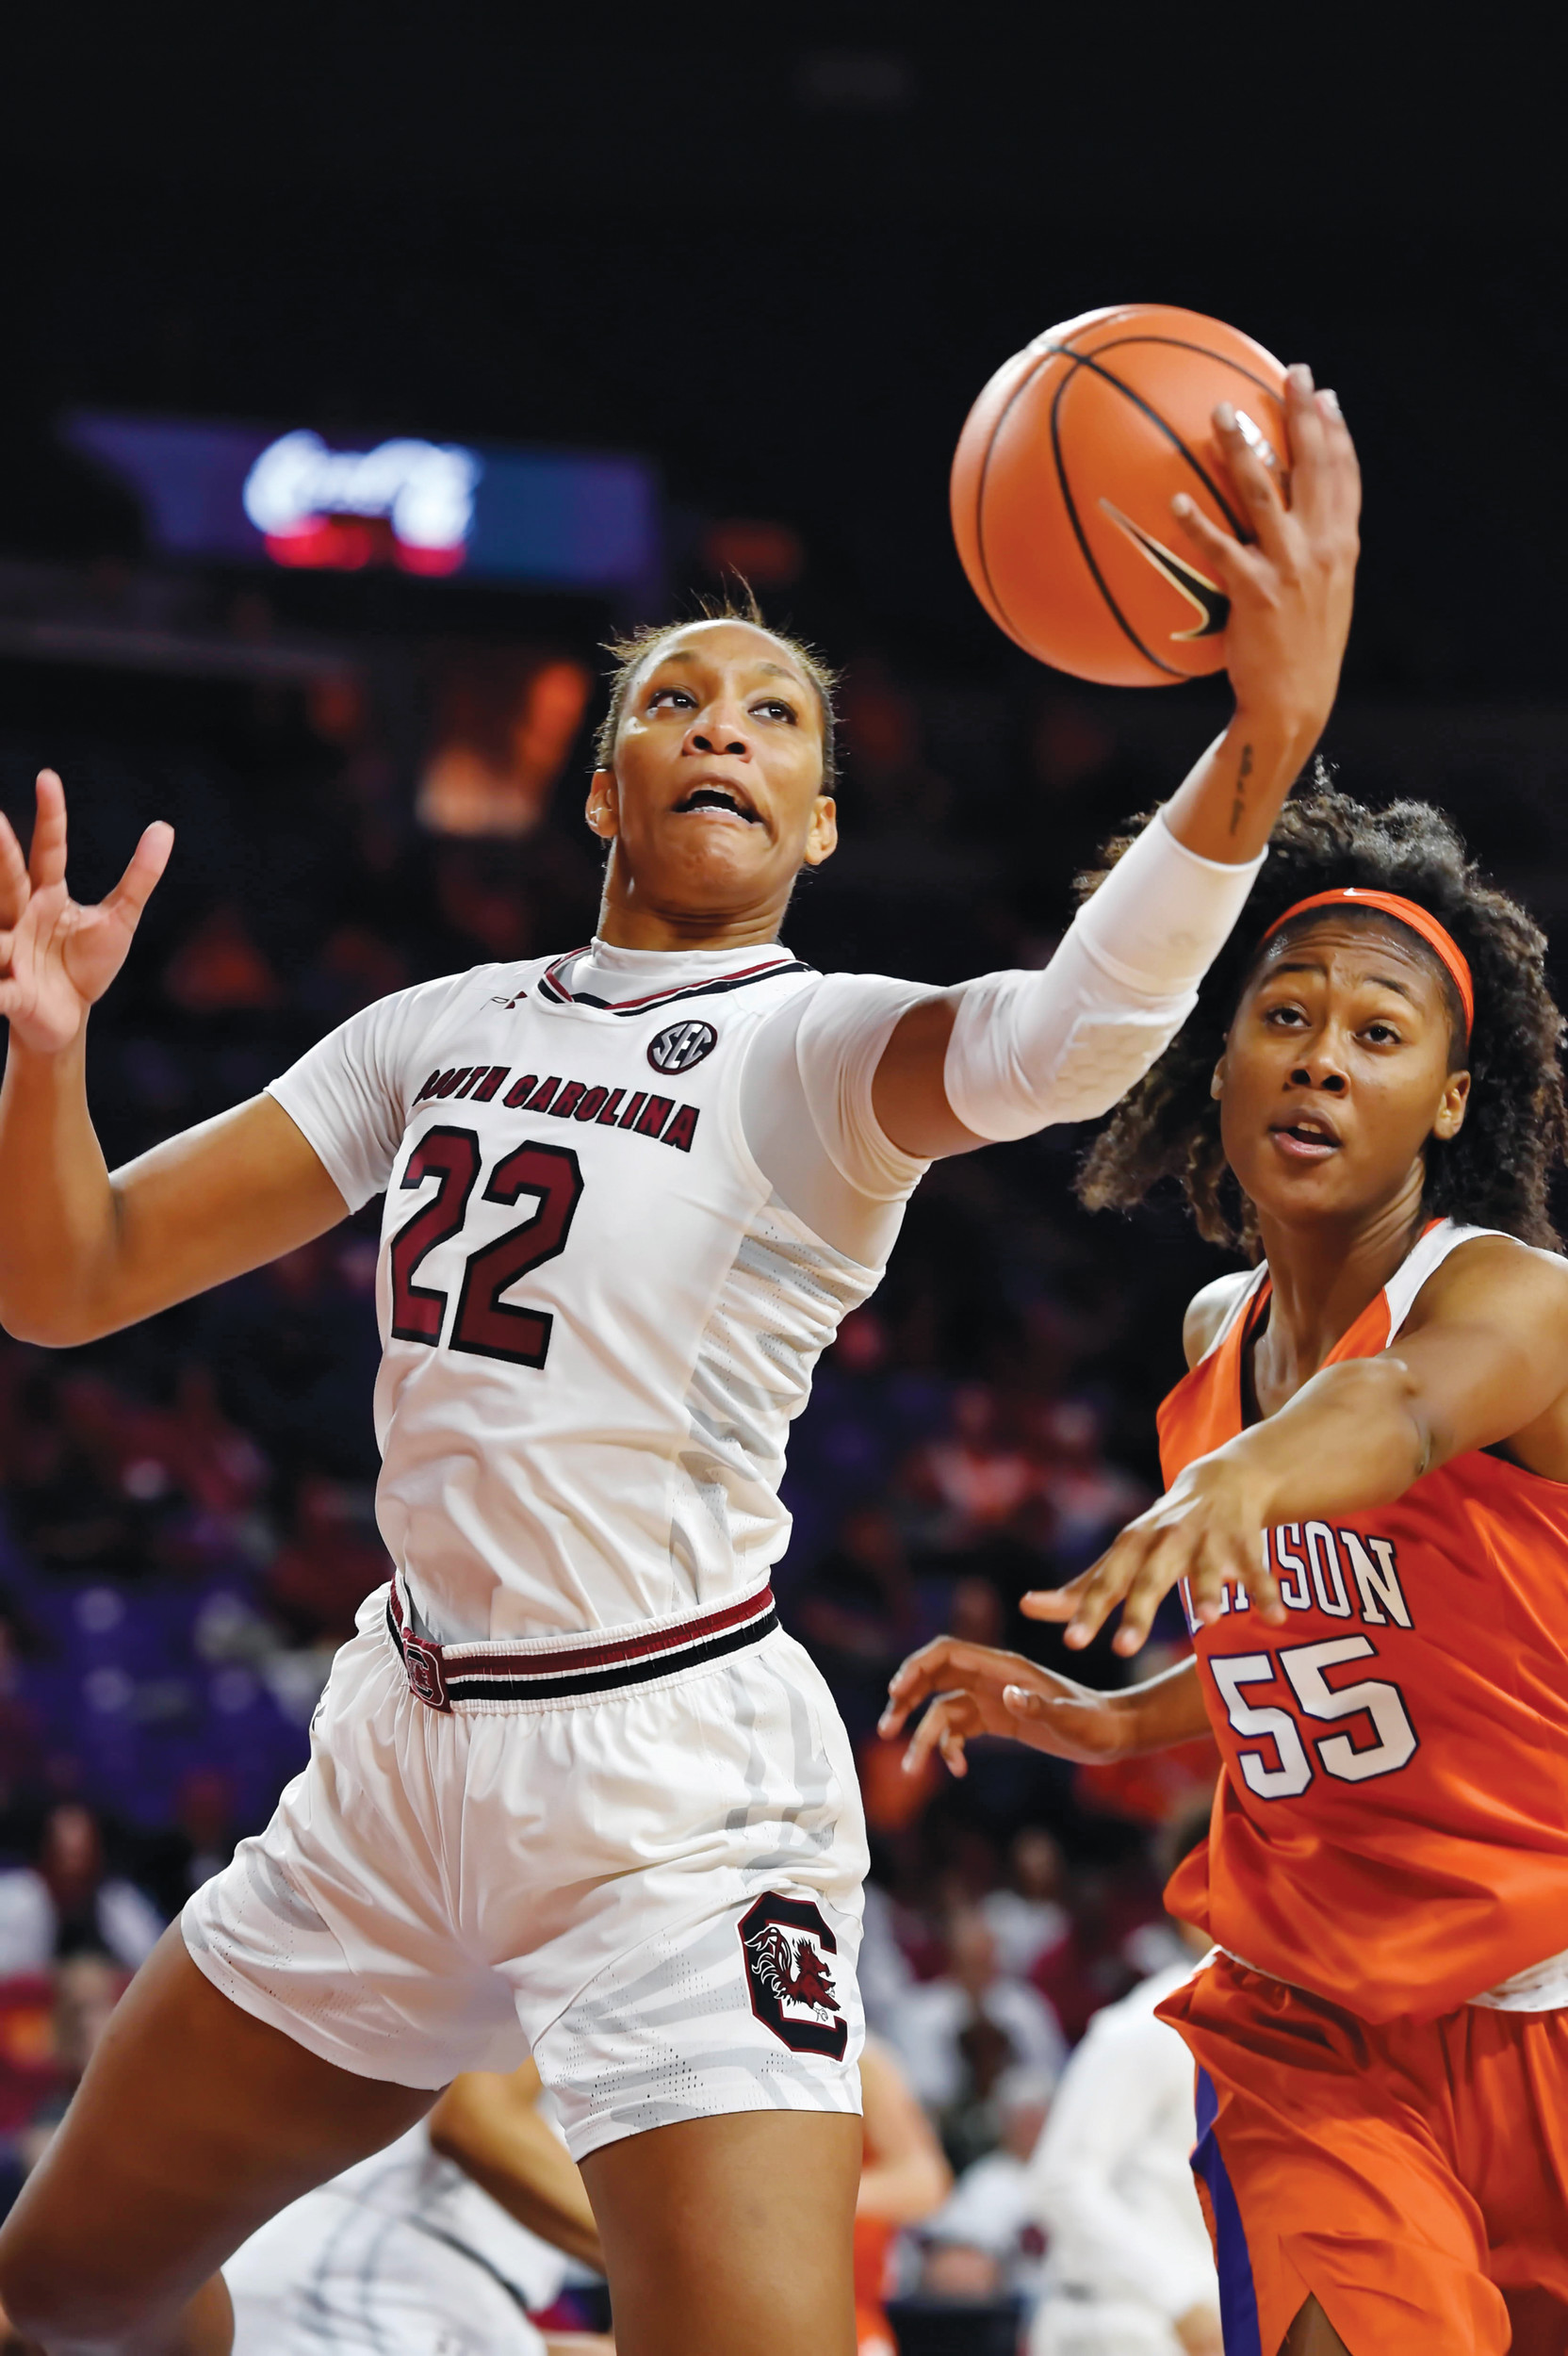 South Carolina's A'ja Wilson (22) grabs a rebound in front of Clemson's Tylar Bennett during the first half of the Gamecocks' 66-36 victory on Thursday in Clemson.